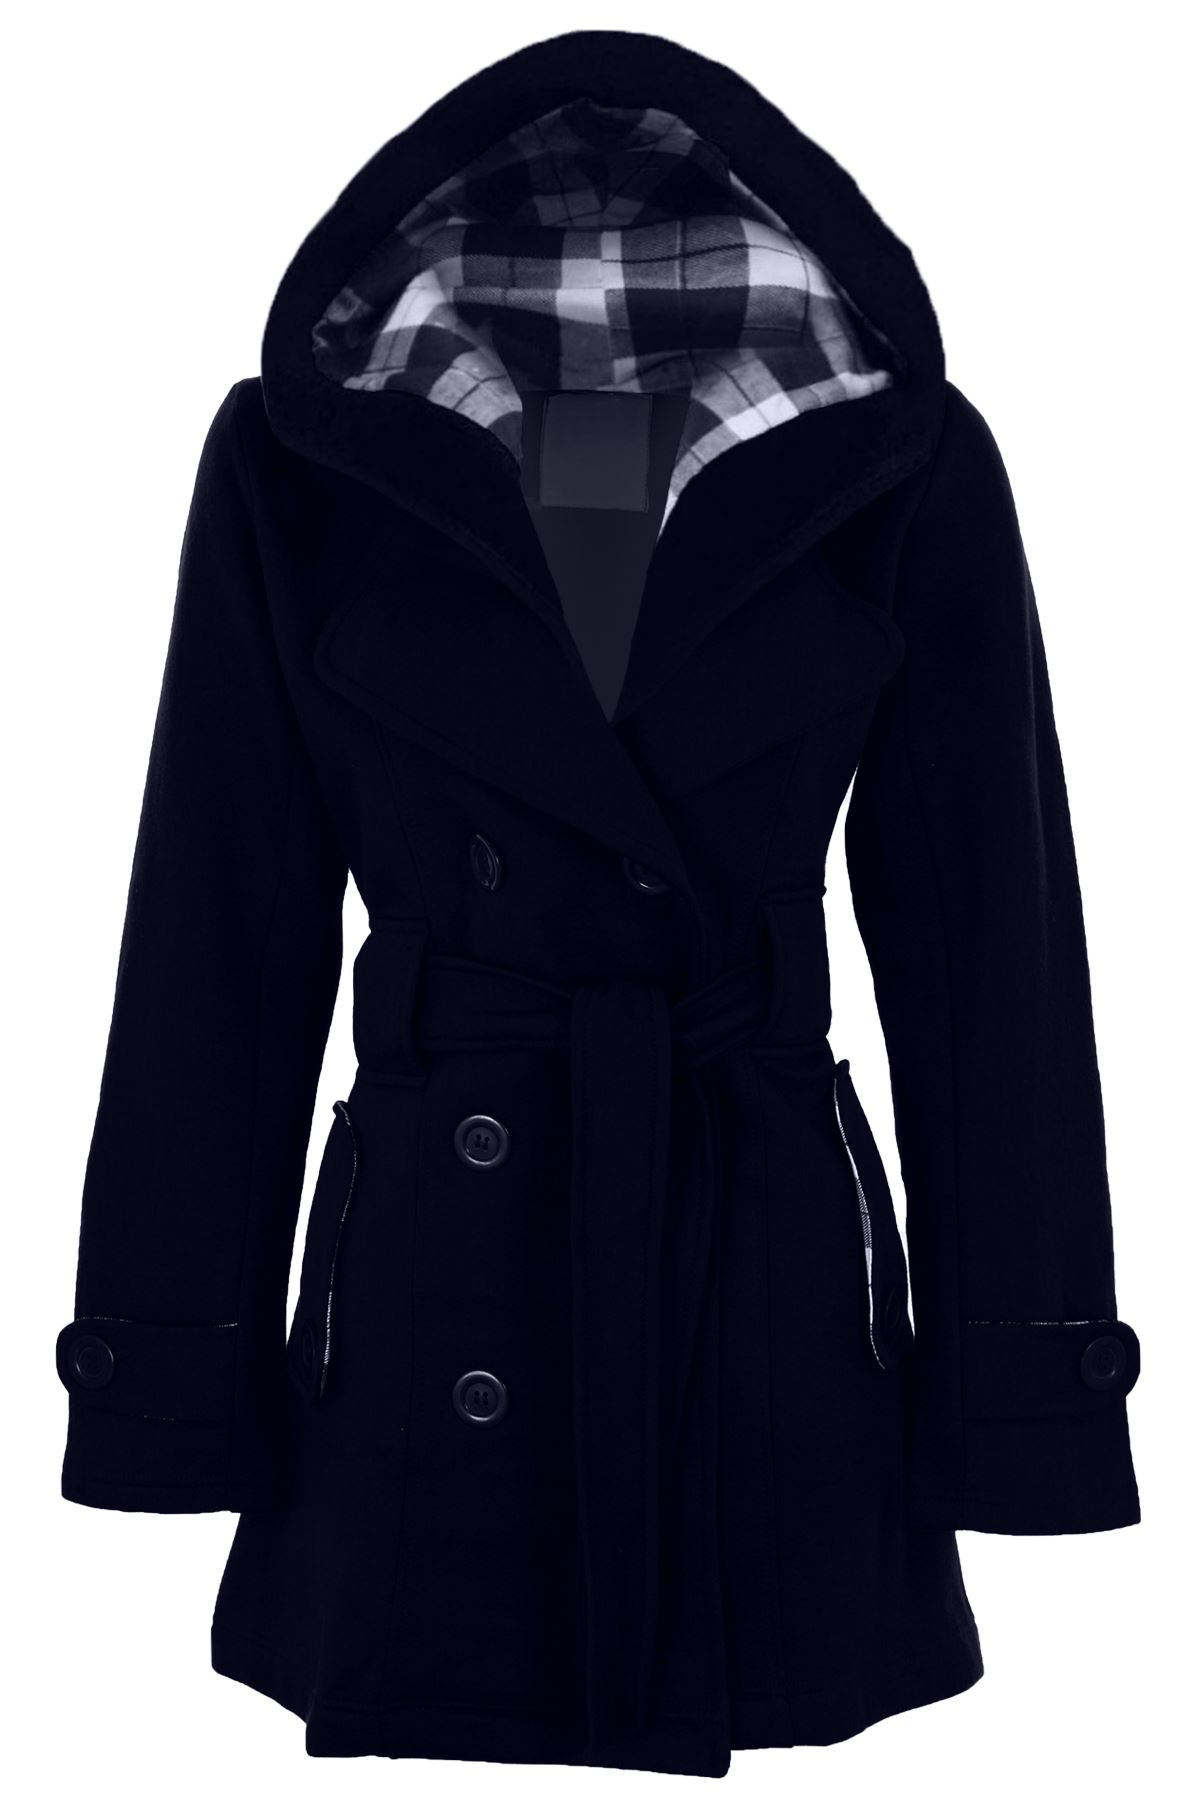 Women-039-s-Belted-Hooded-Button-Up-Ladies-Long-Checked-Winter-Duffle-Jacket-Coat